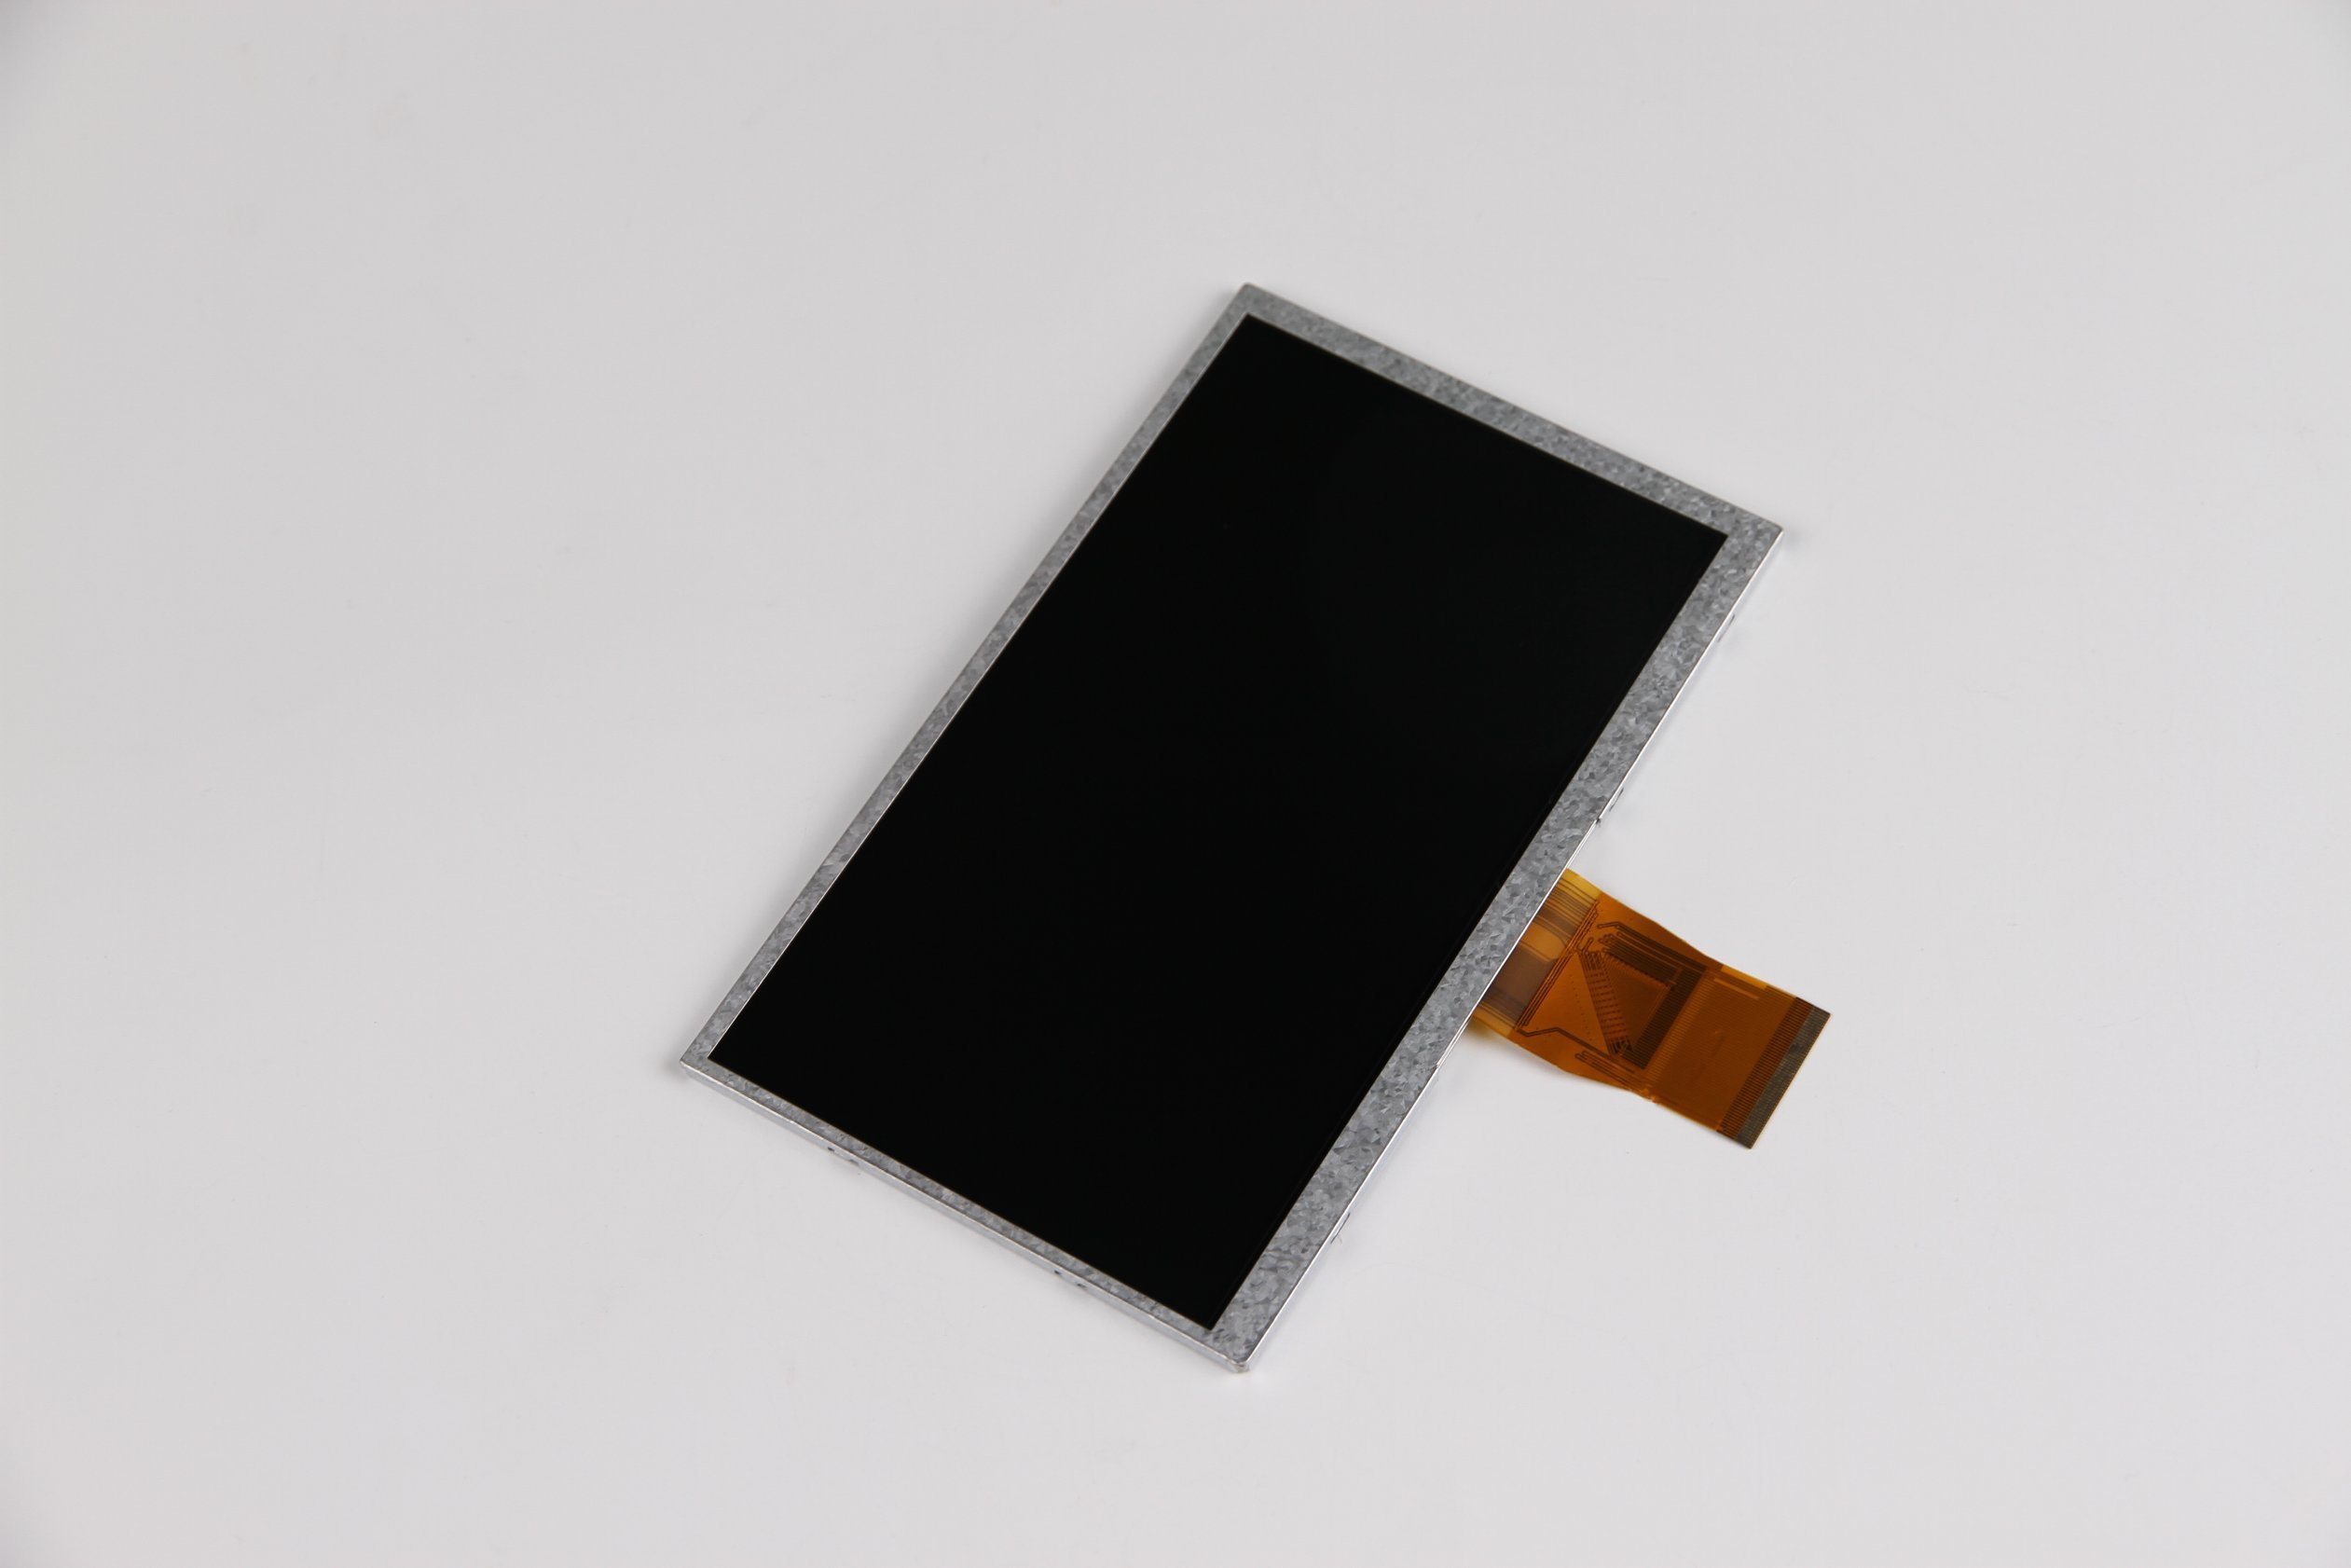 7.0 Inch High Resolutions Colorful Display TFT LCD Display